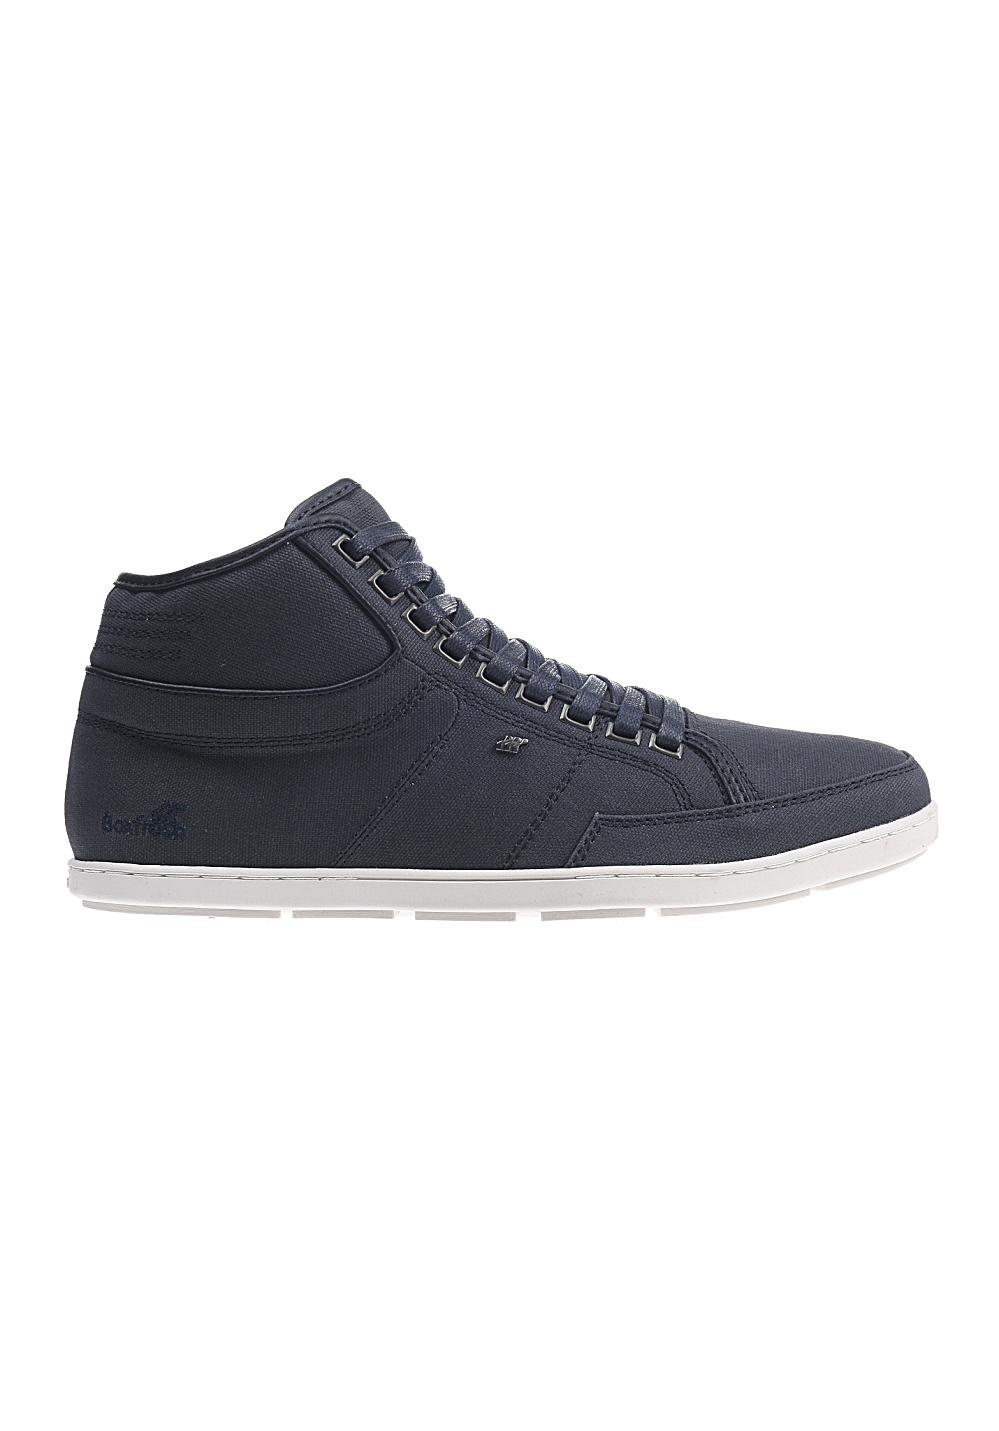 ... BOXFRESH Swapp Blok UH Wxd Cnvs - Sneakers for Men - Blue. Previous